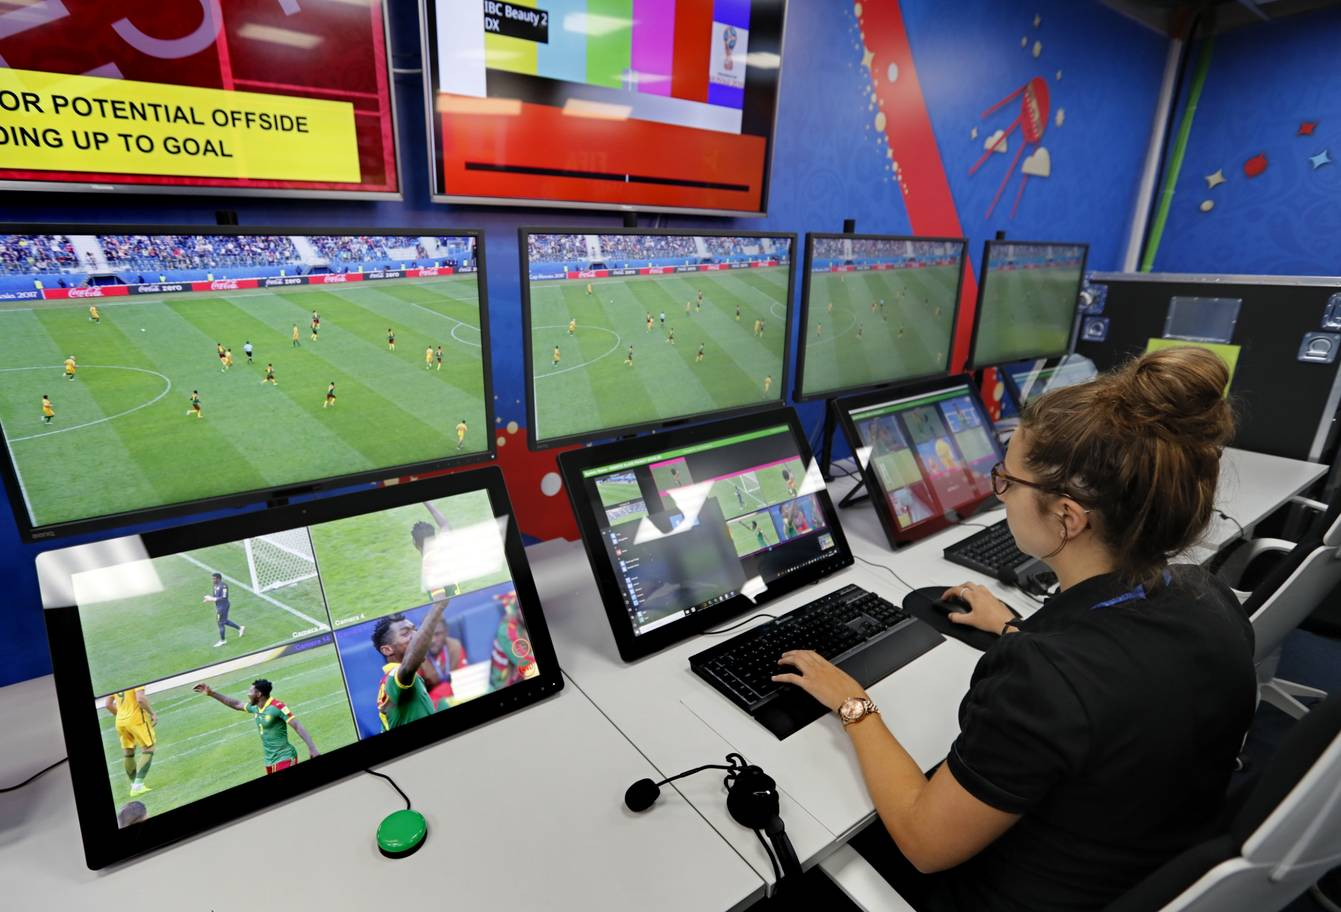 A view of the video assistant refereeing VAR operation room of the 2018 World Cup International Broadcast Centre IBC in Moscow Russia